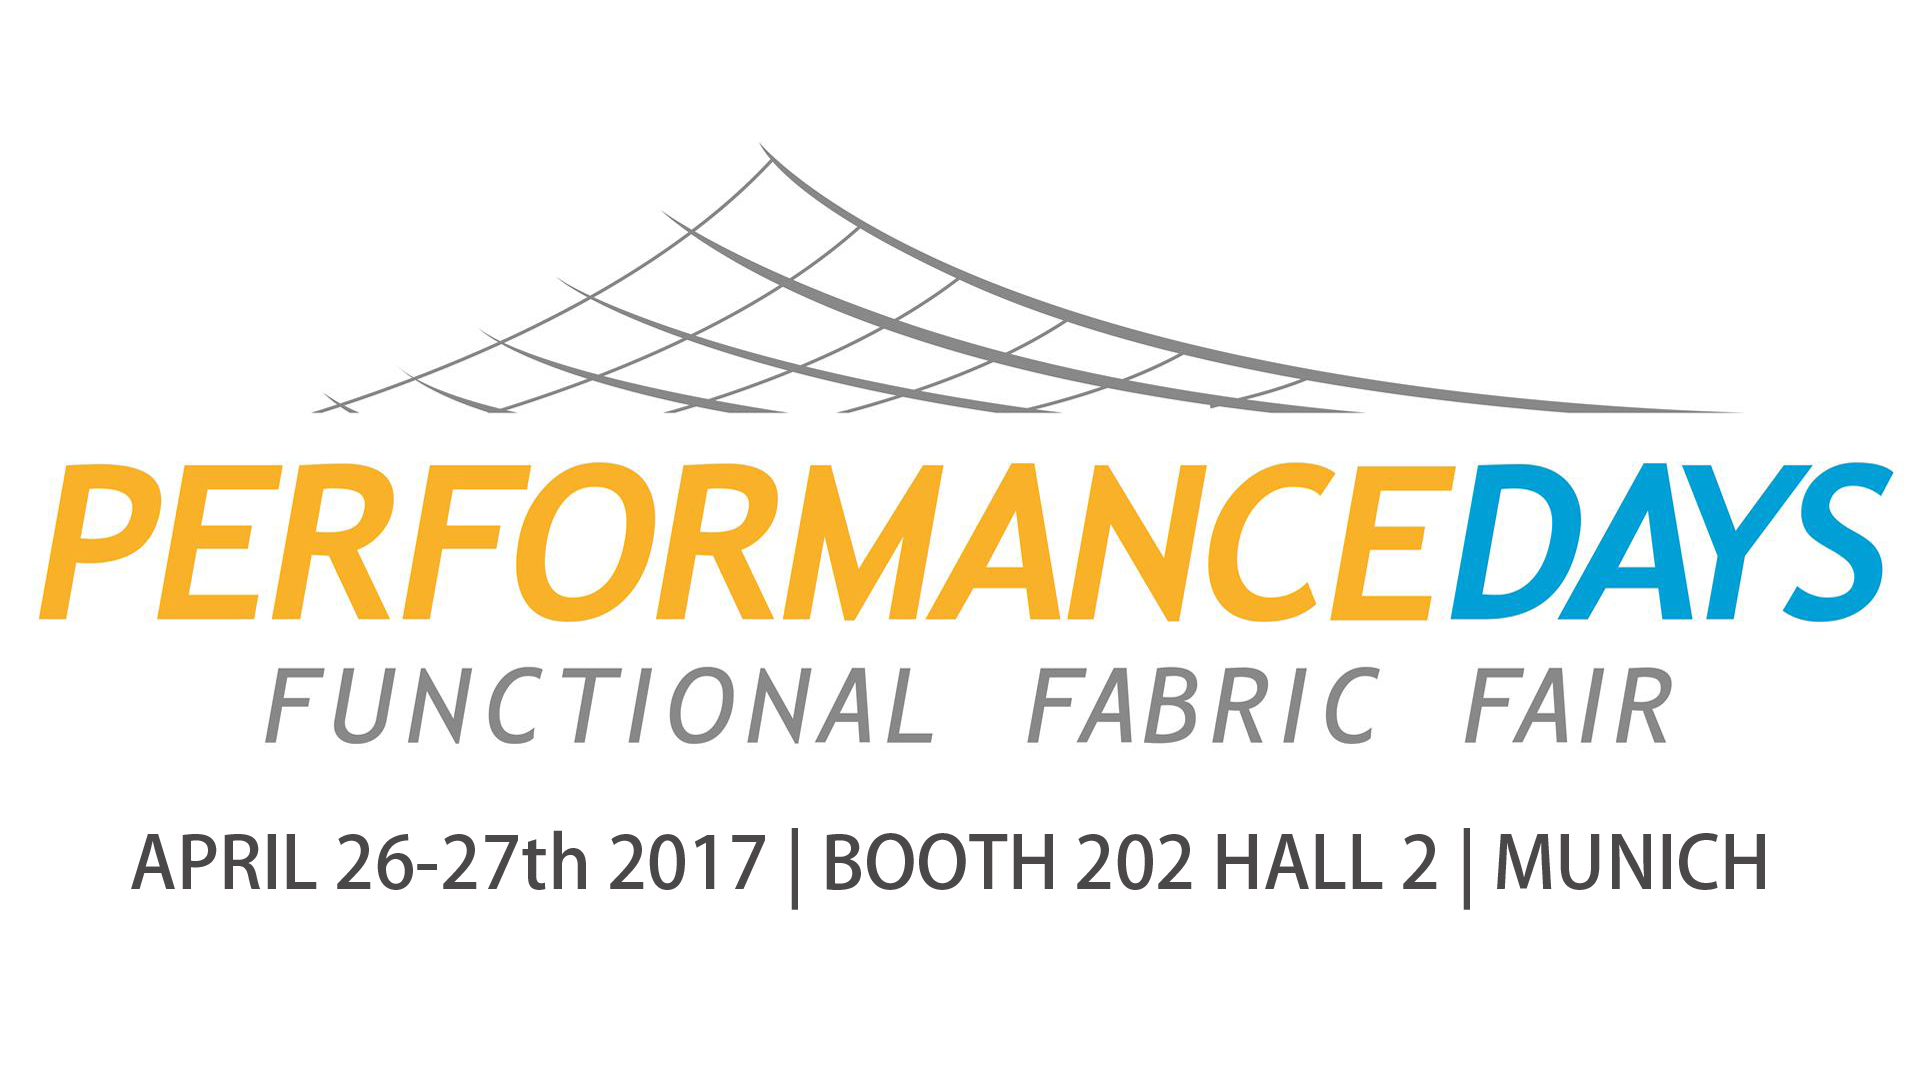 FUNCTIONAL FABRIC SHOW- PERFORMANCE DAYS MUNICH APR 26-27th 2017